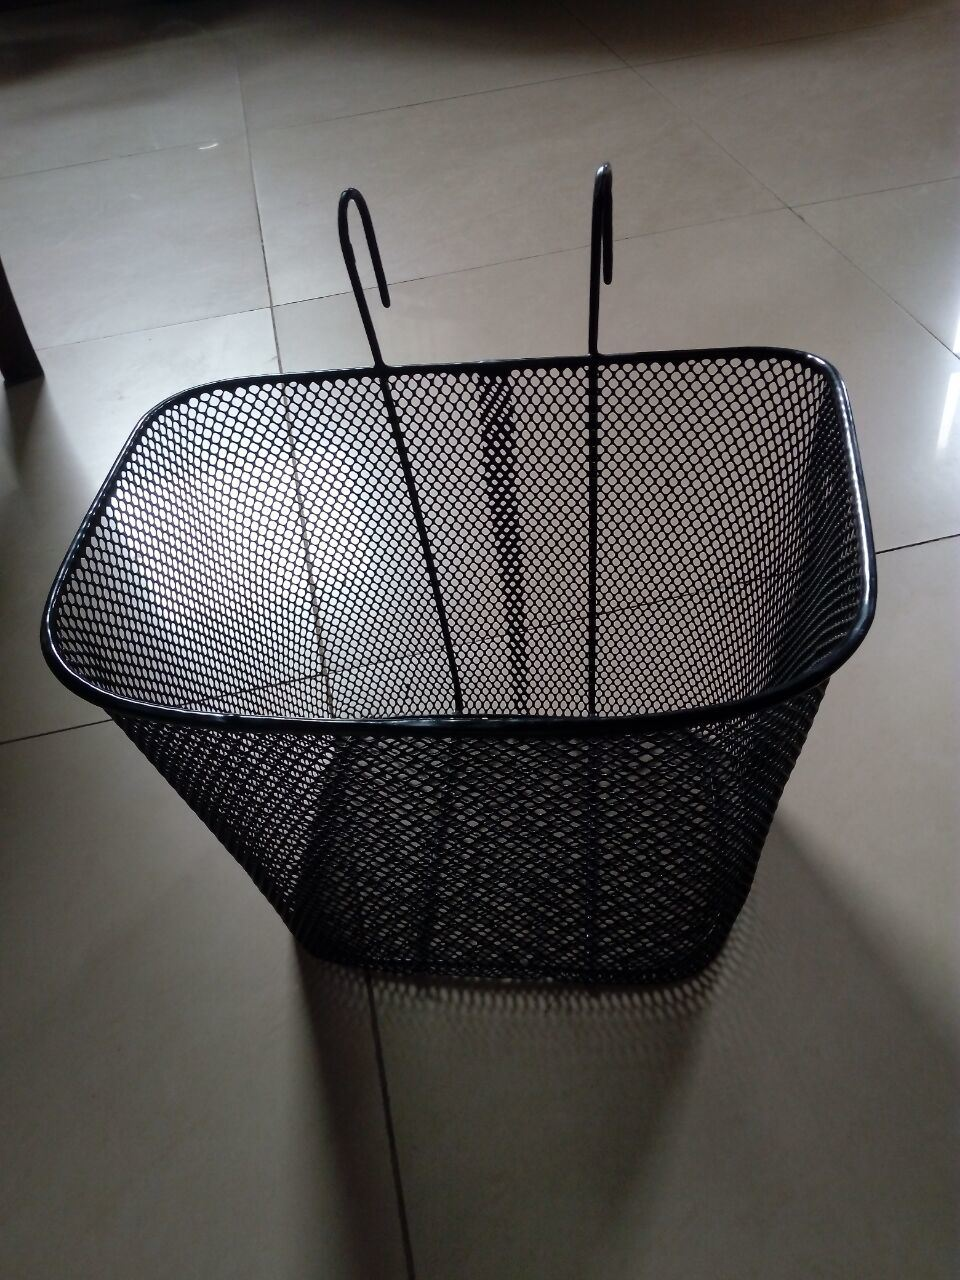 The Basket Used in Bicycle